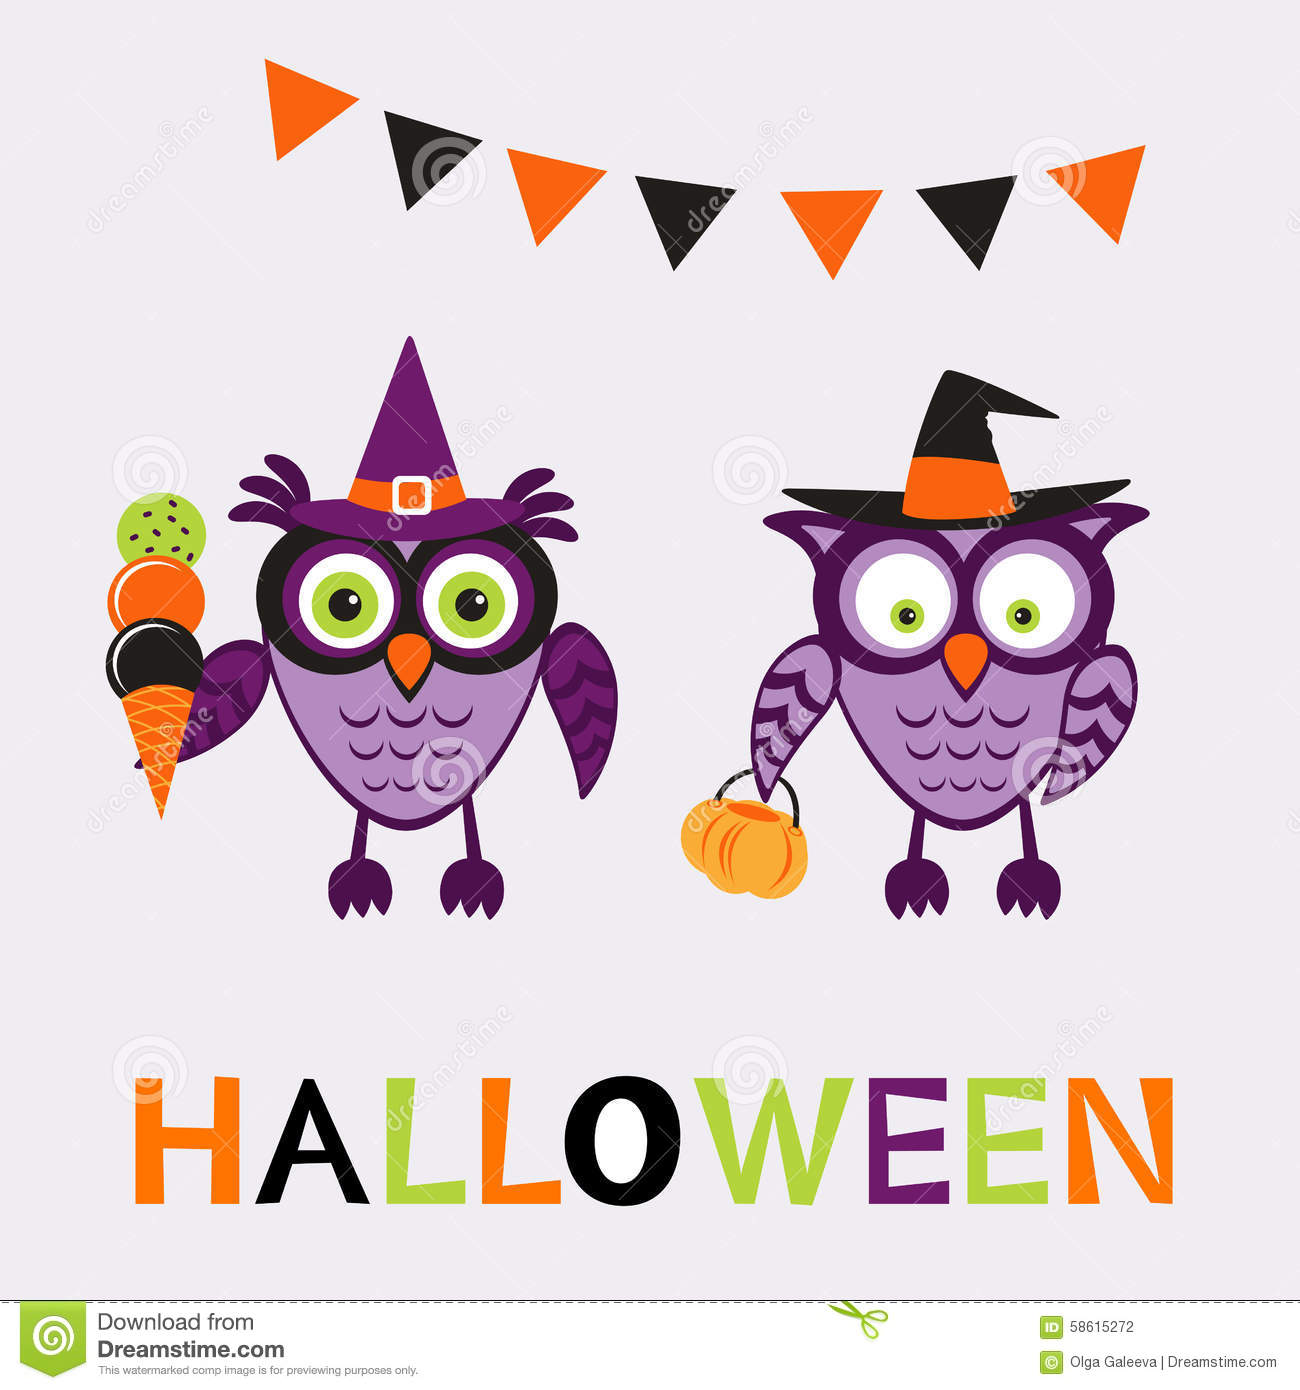 An Illustration Of Cute Halloween Owls